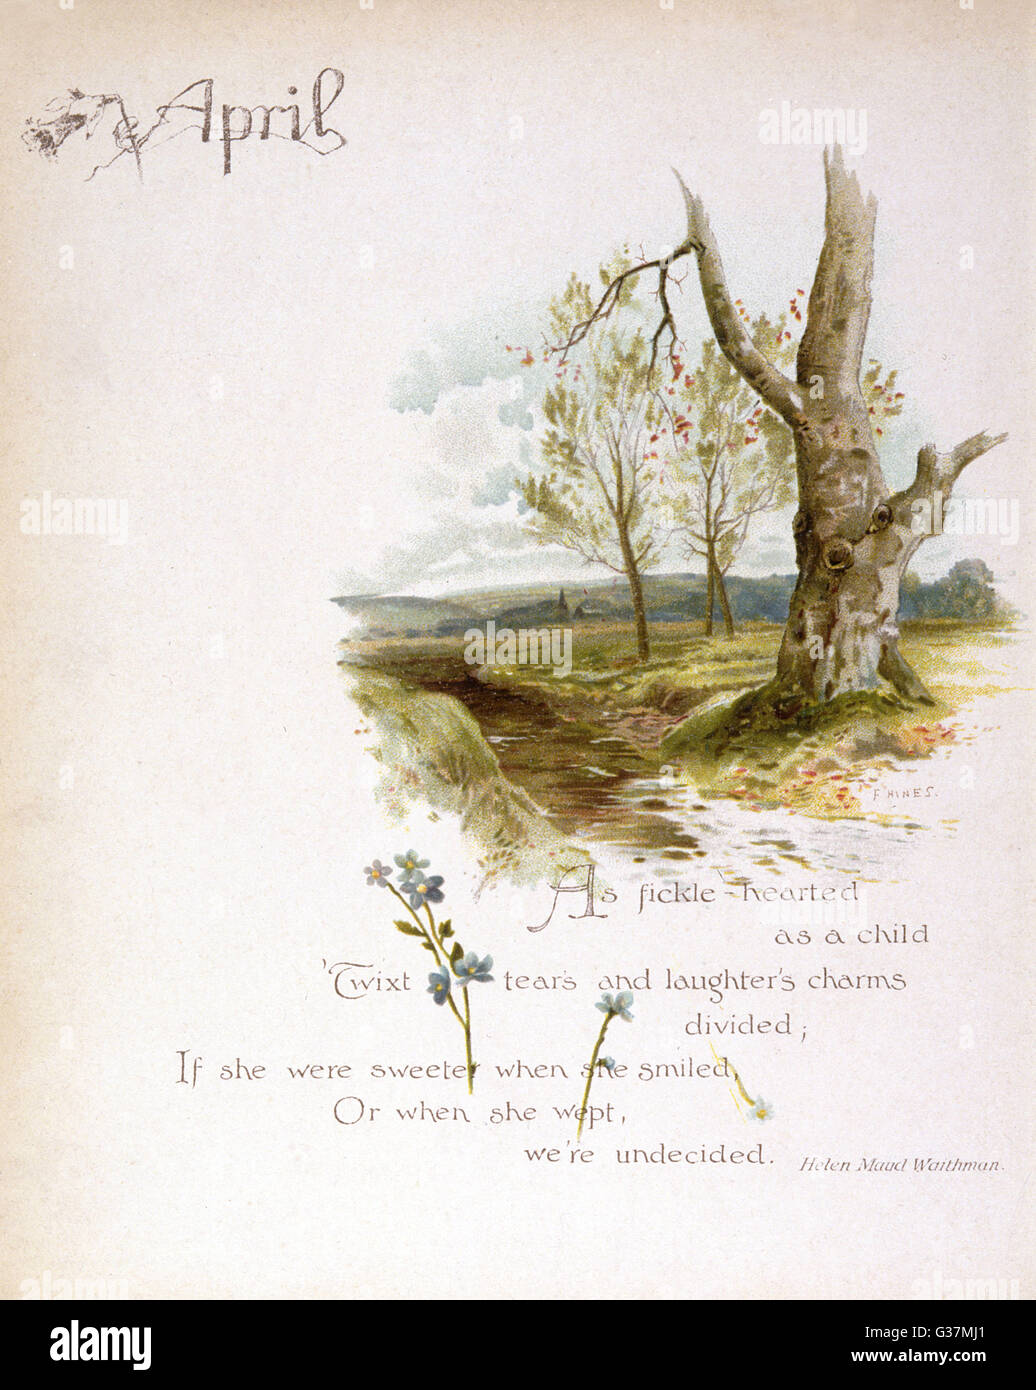 Book illustration -- March, with snowdrops and a river scene.      Date: circa 1880 - Stock Image